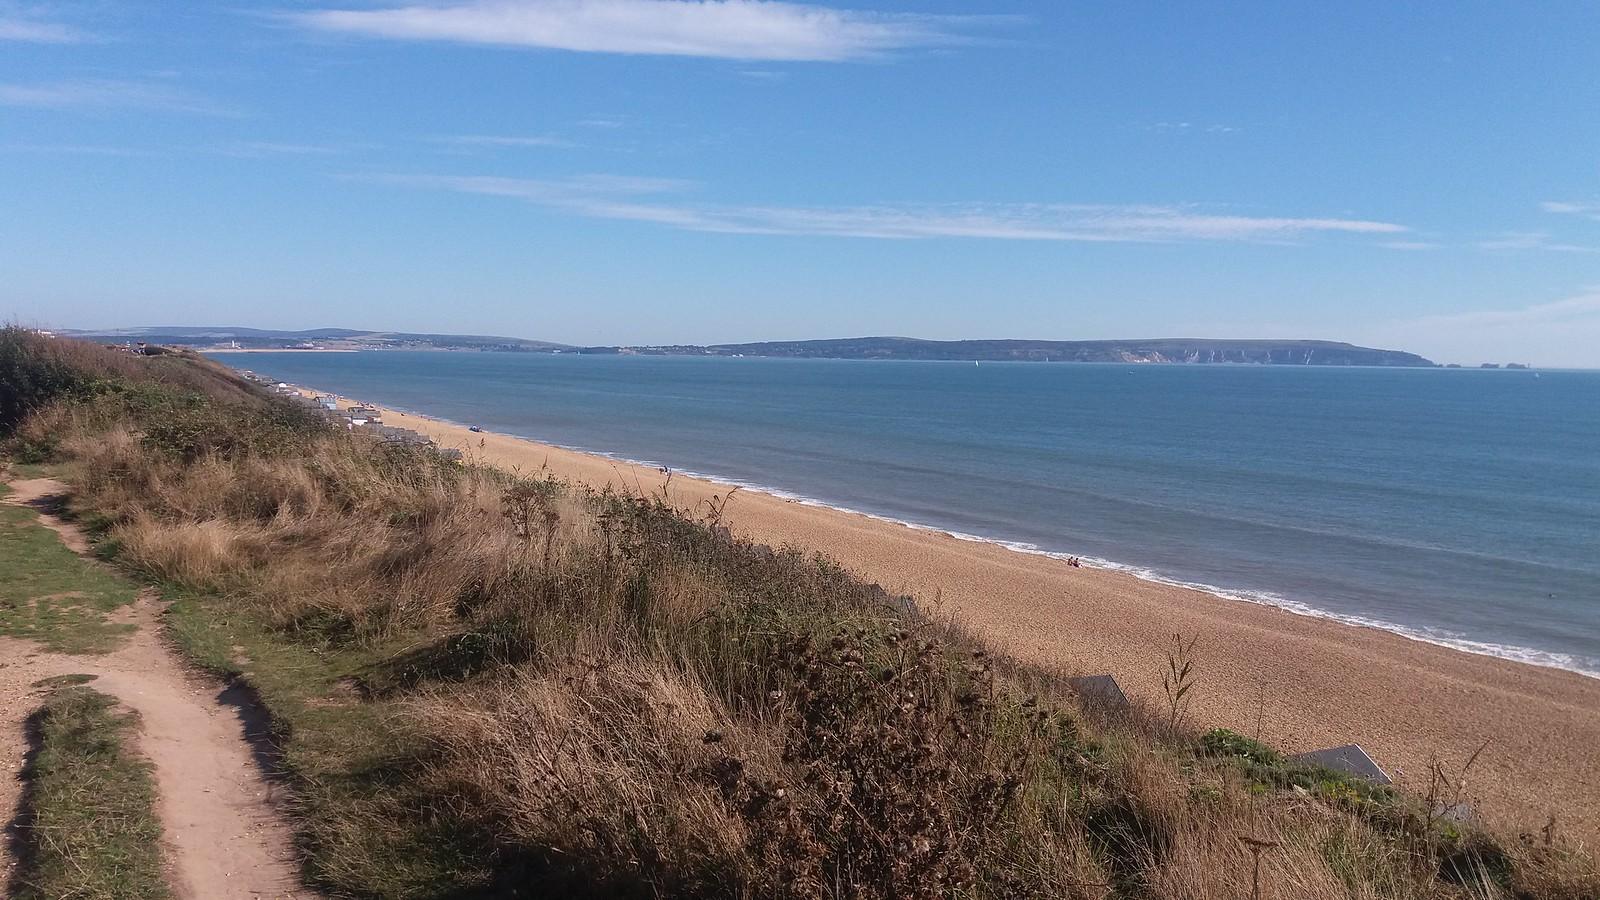 20160907_160041 Hordle Cliff - cliff top path